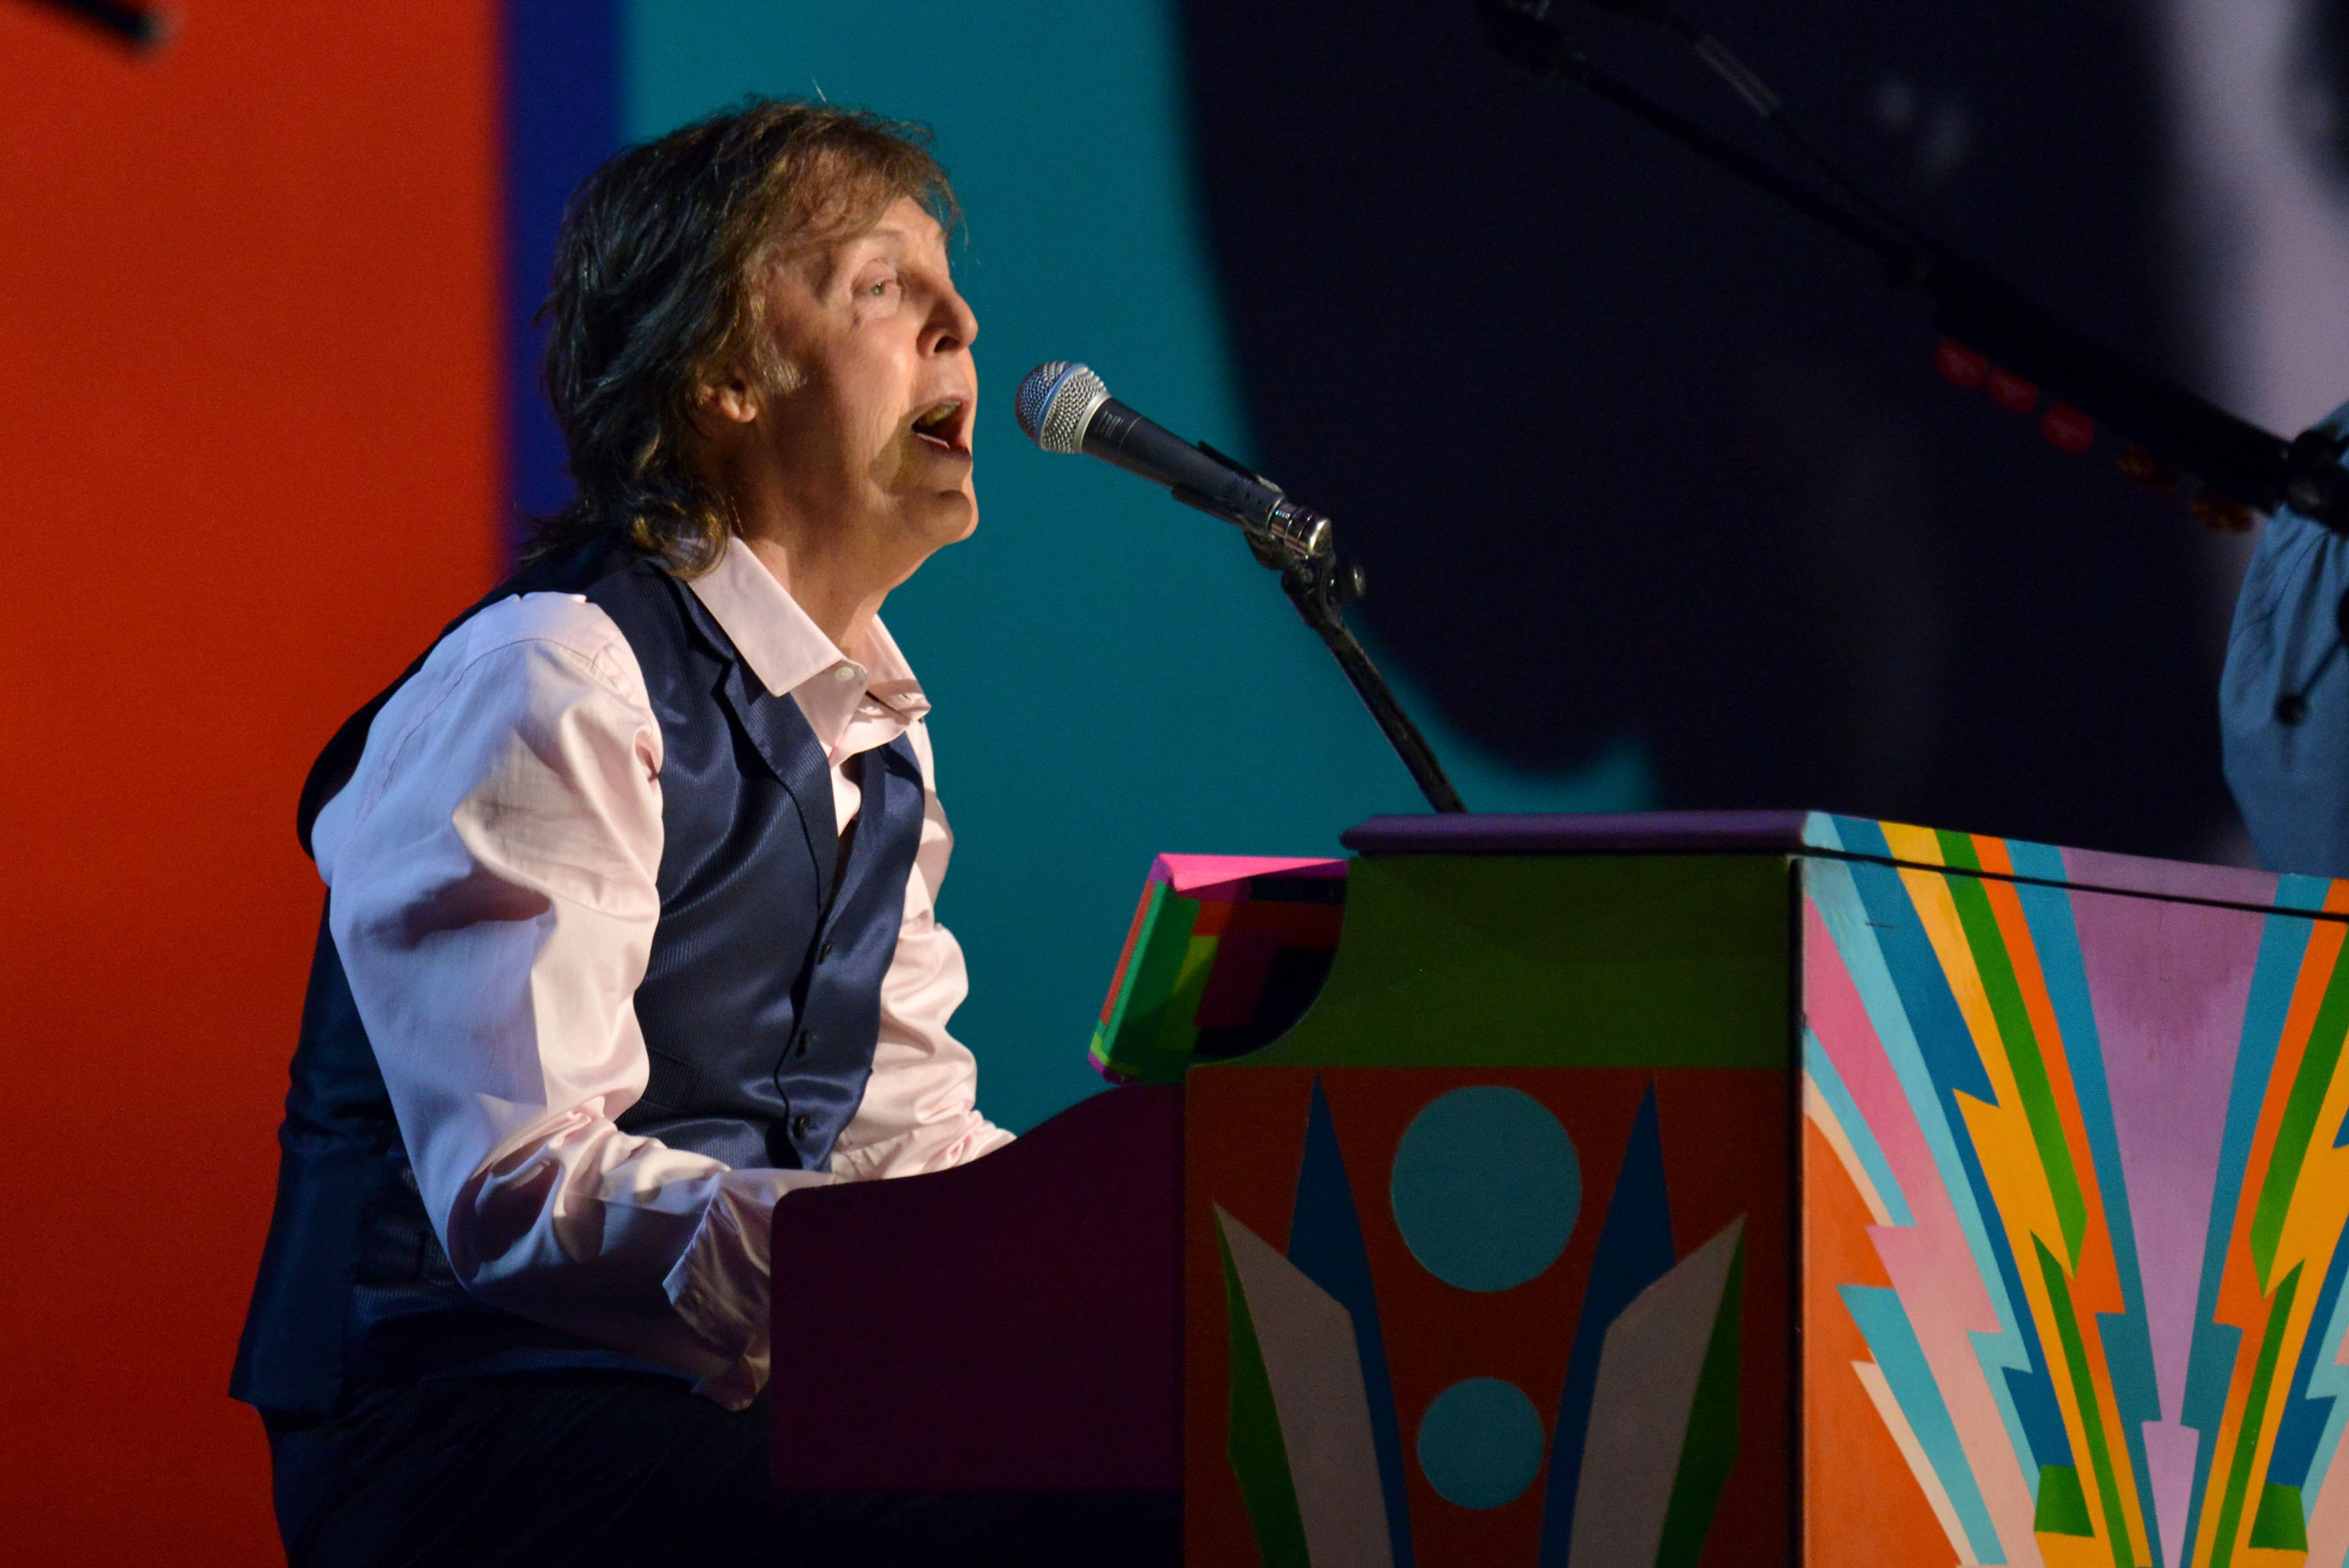 Paul McCartney performs onstage during  The Night That Changed America: A GRAMMY Salute To The Beatles  on Jan. 27, 2014 in Los Angeles.